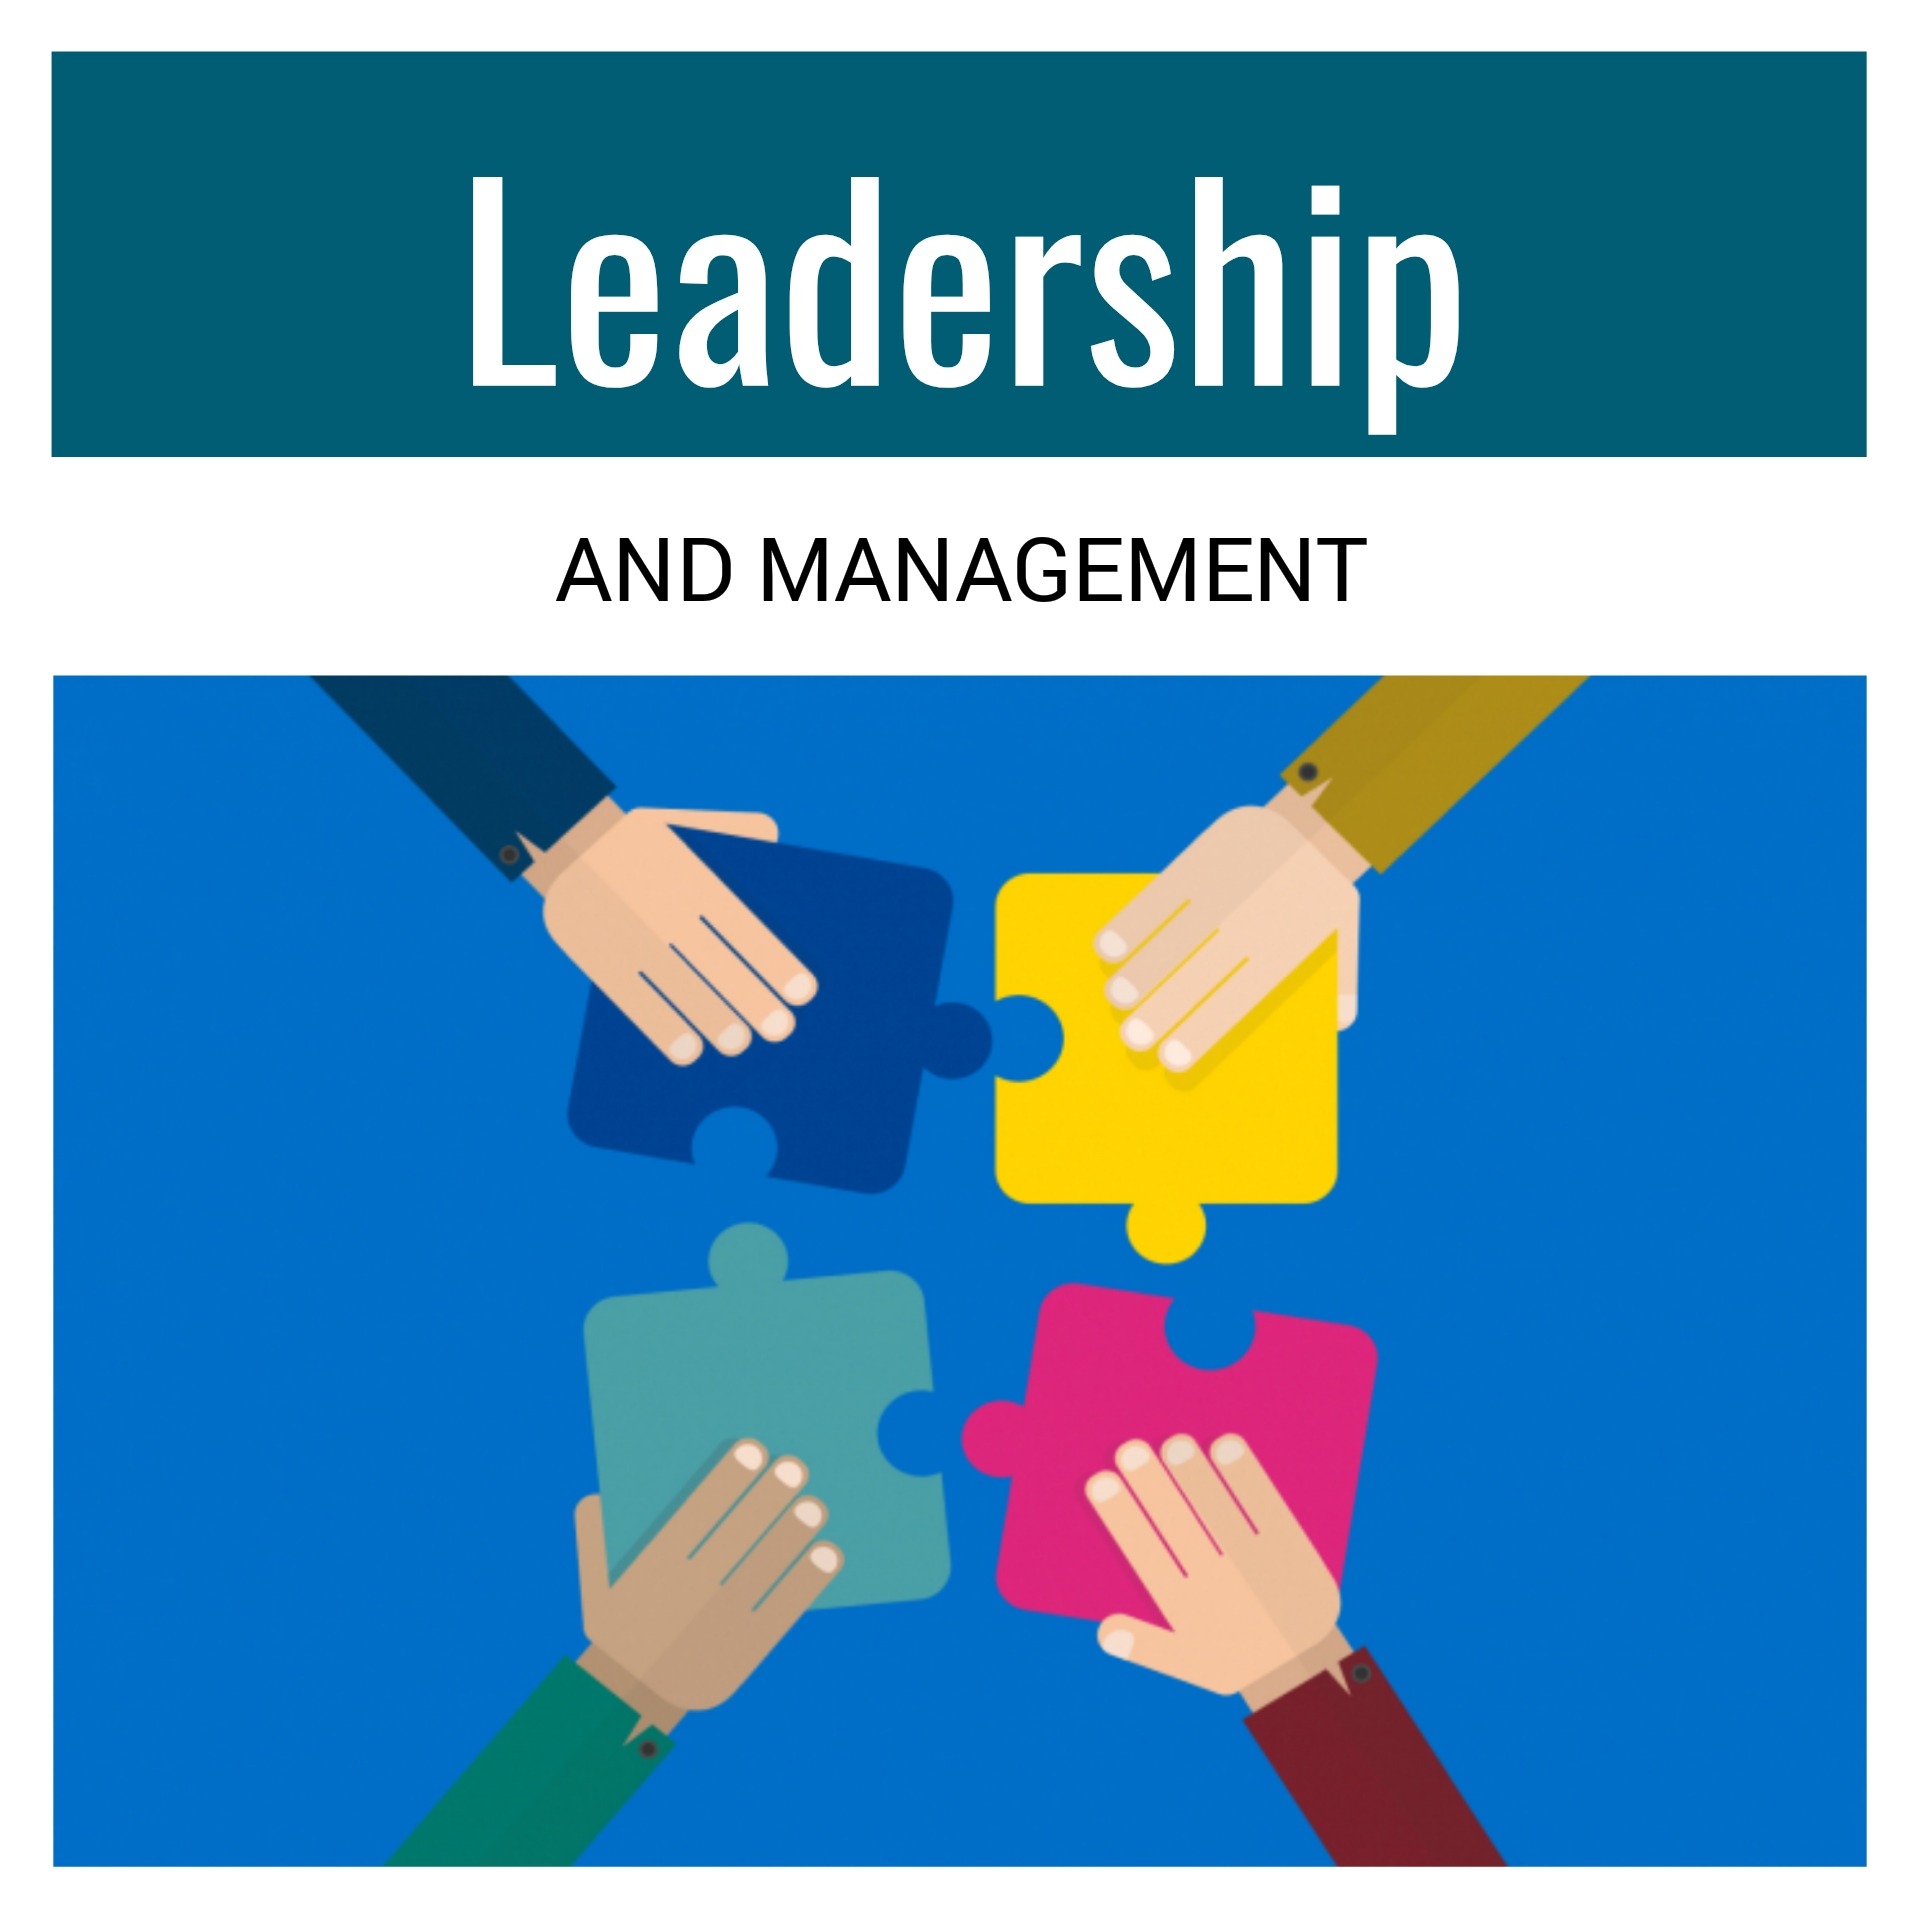 Leadership And Management 2A 2021 - 2022